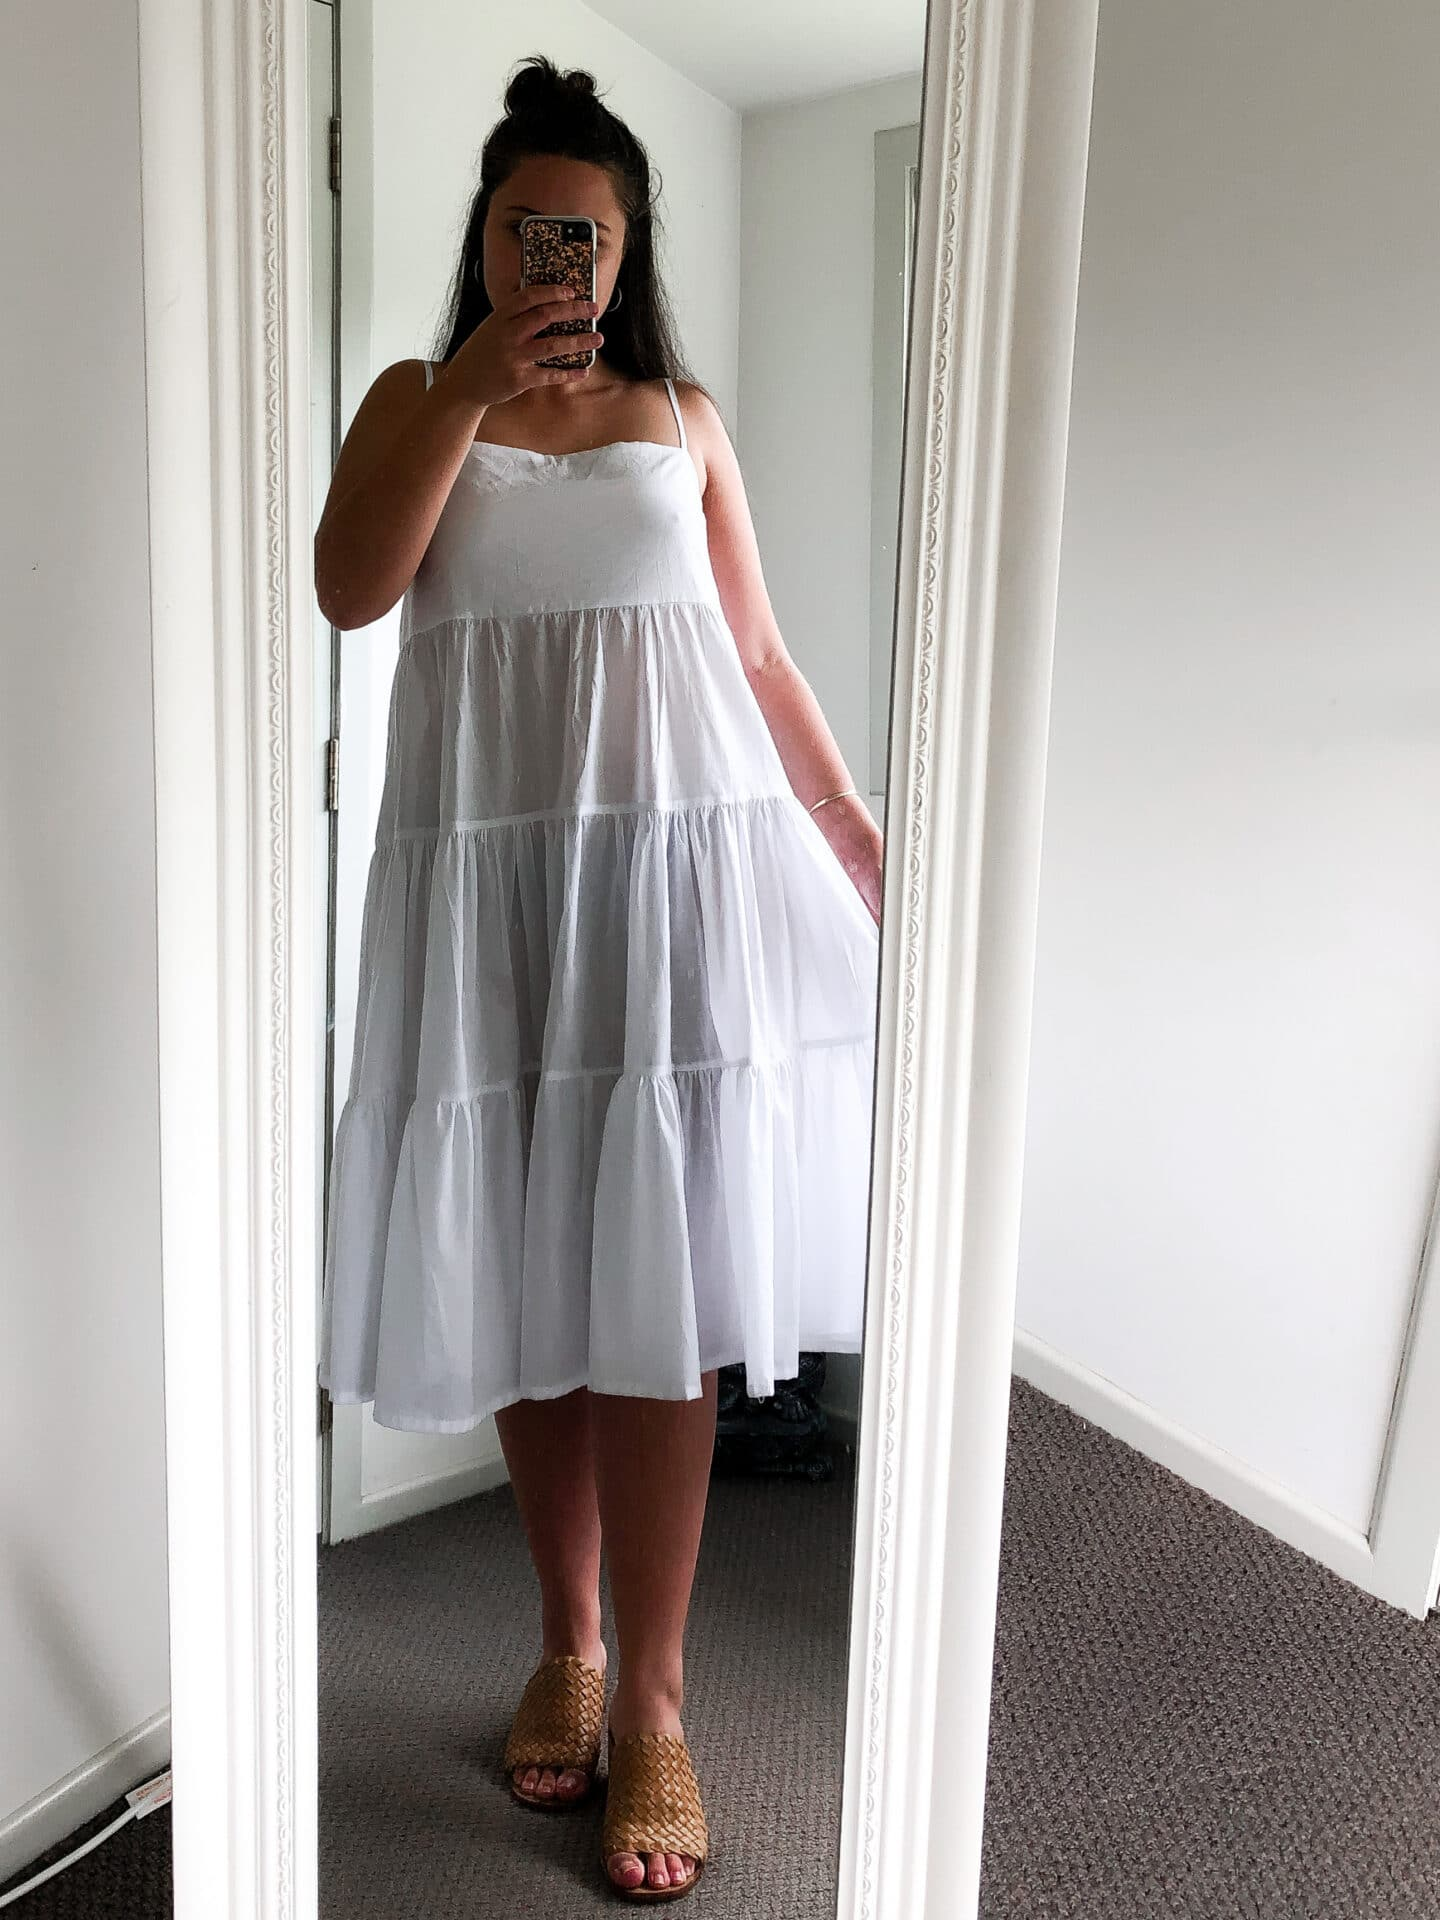 makyla wearing white cotton tiered maxi dress in vintage mirror styles with st agni heels.